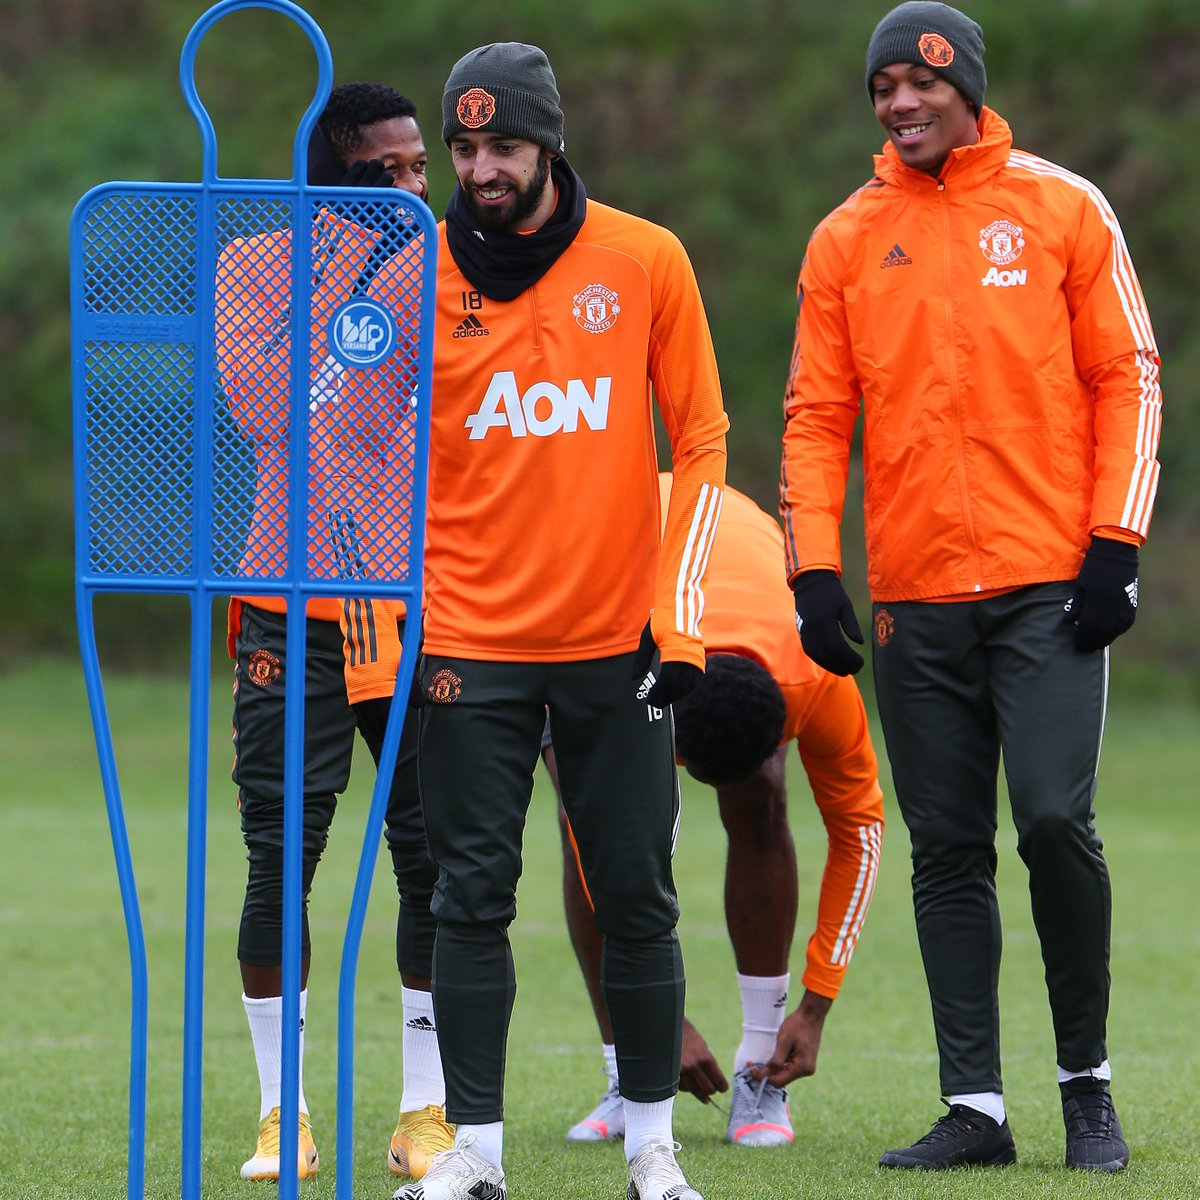 Just a light warm-up for @B_Fernandes8 today 😅  #MUFC #FULMUN